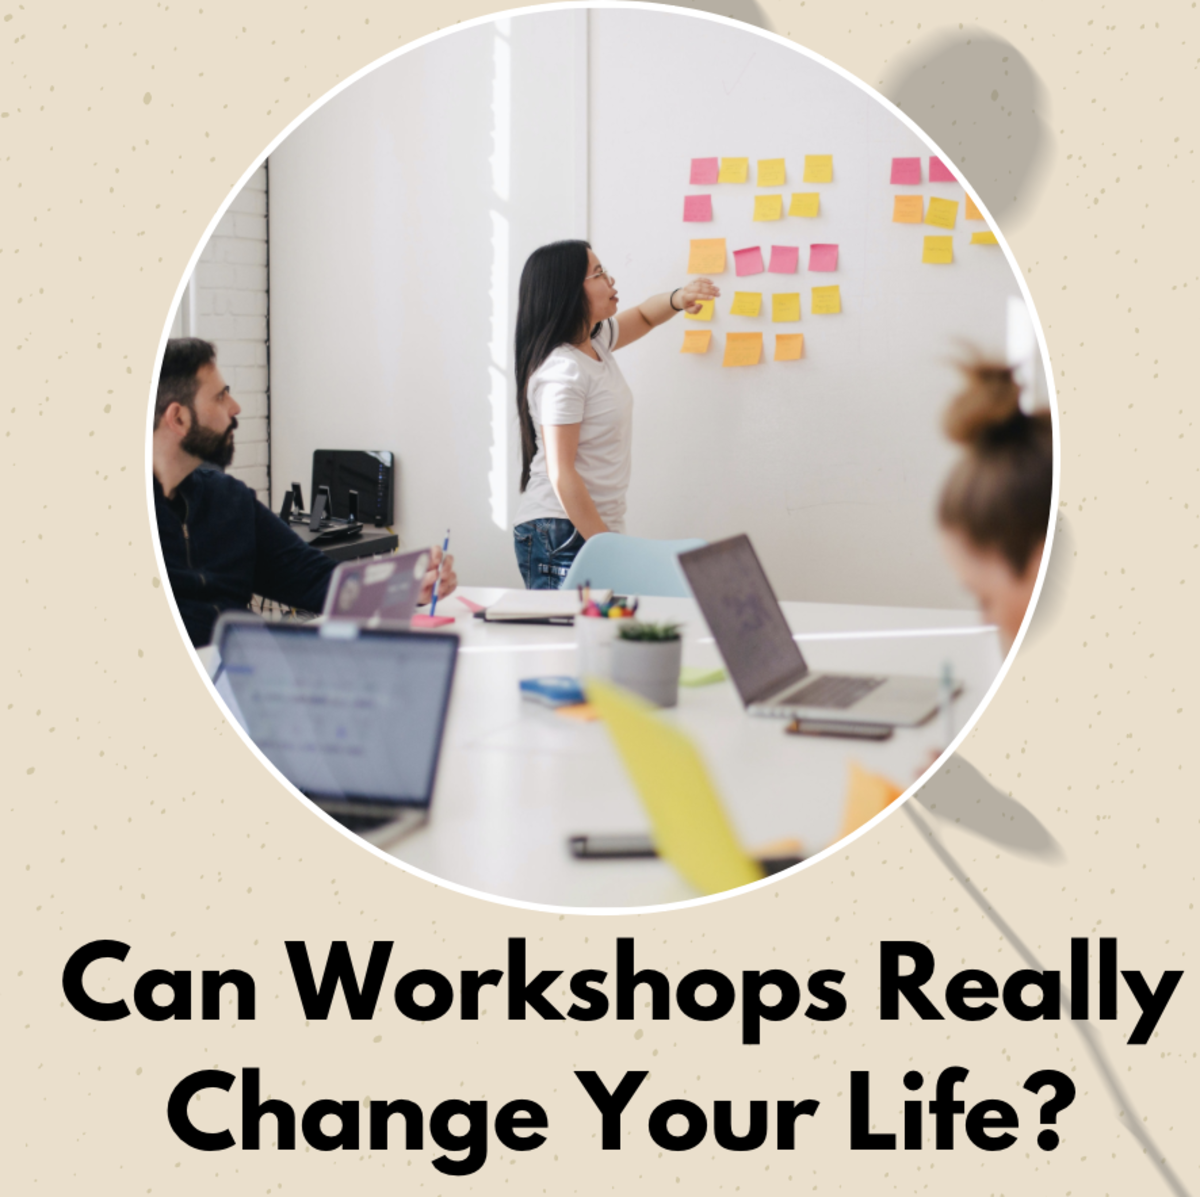 Can Workshops Really Change Your Life?